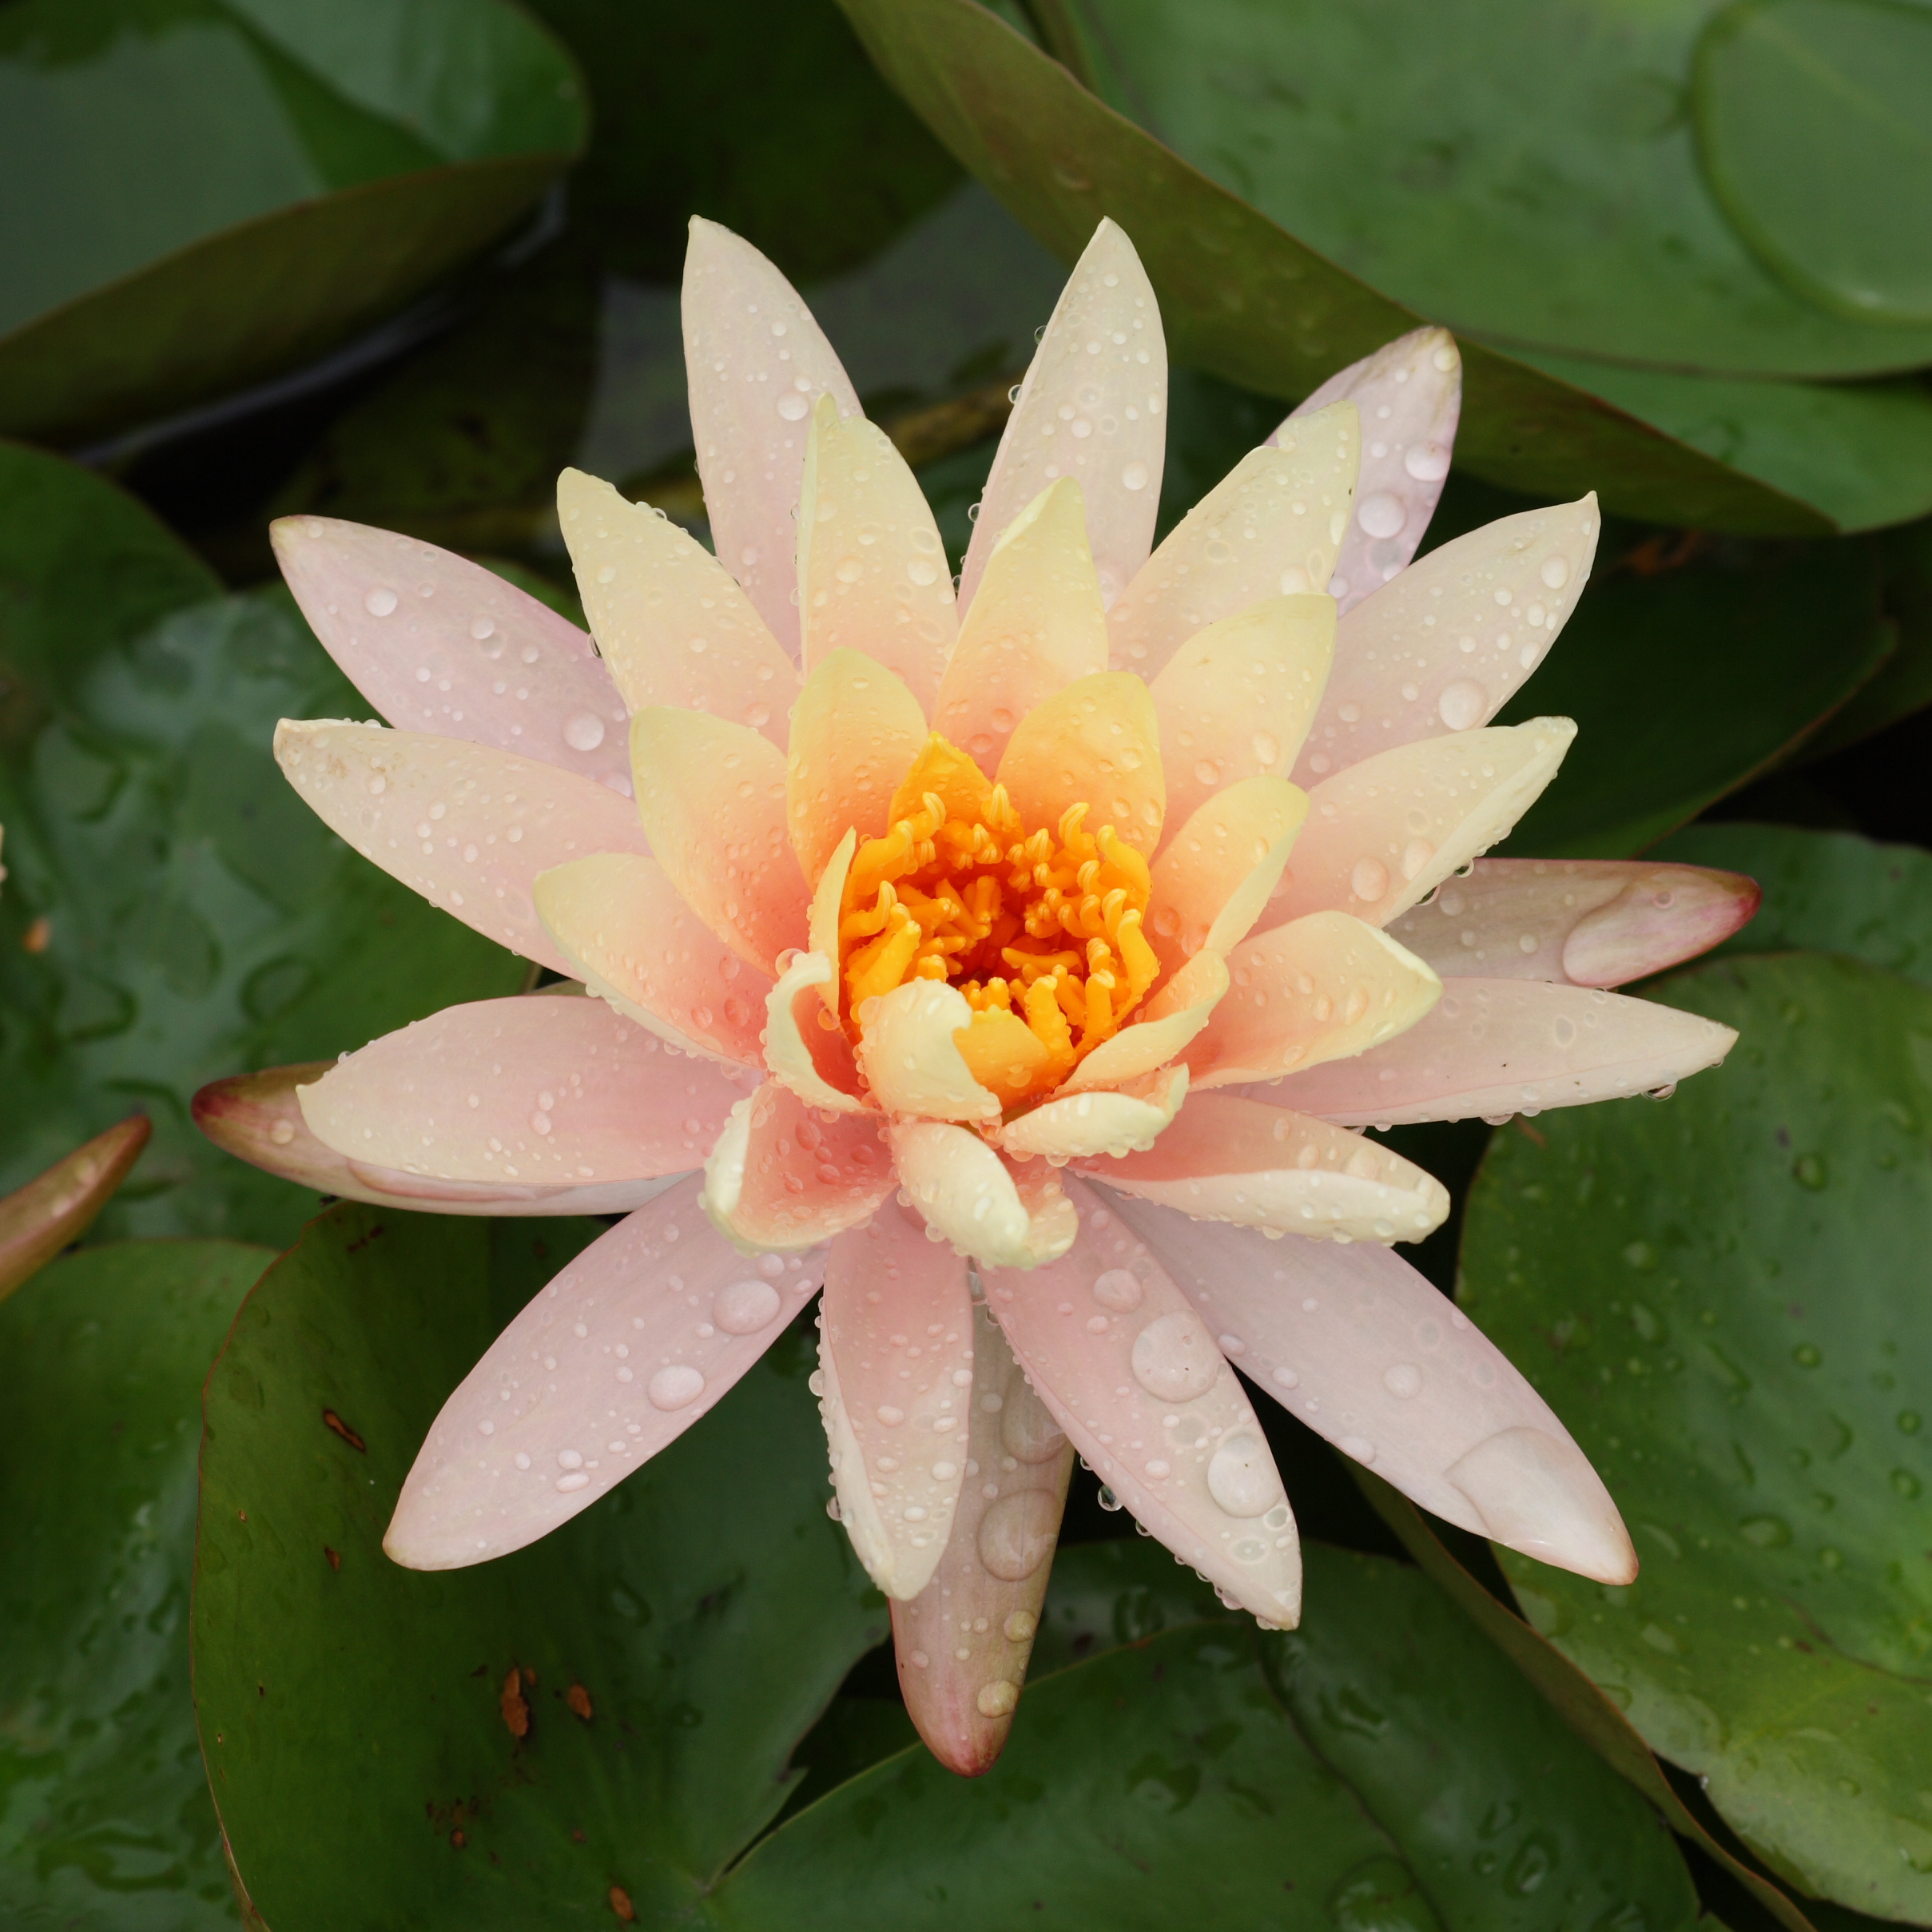 Nymphaea wikipedia peach glow water lily at brooklyn botanic gardeng dhlflorist Images